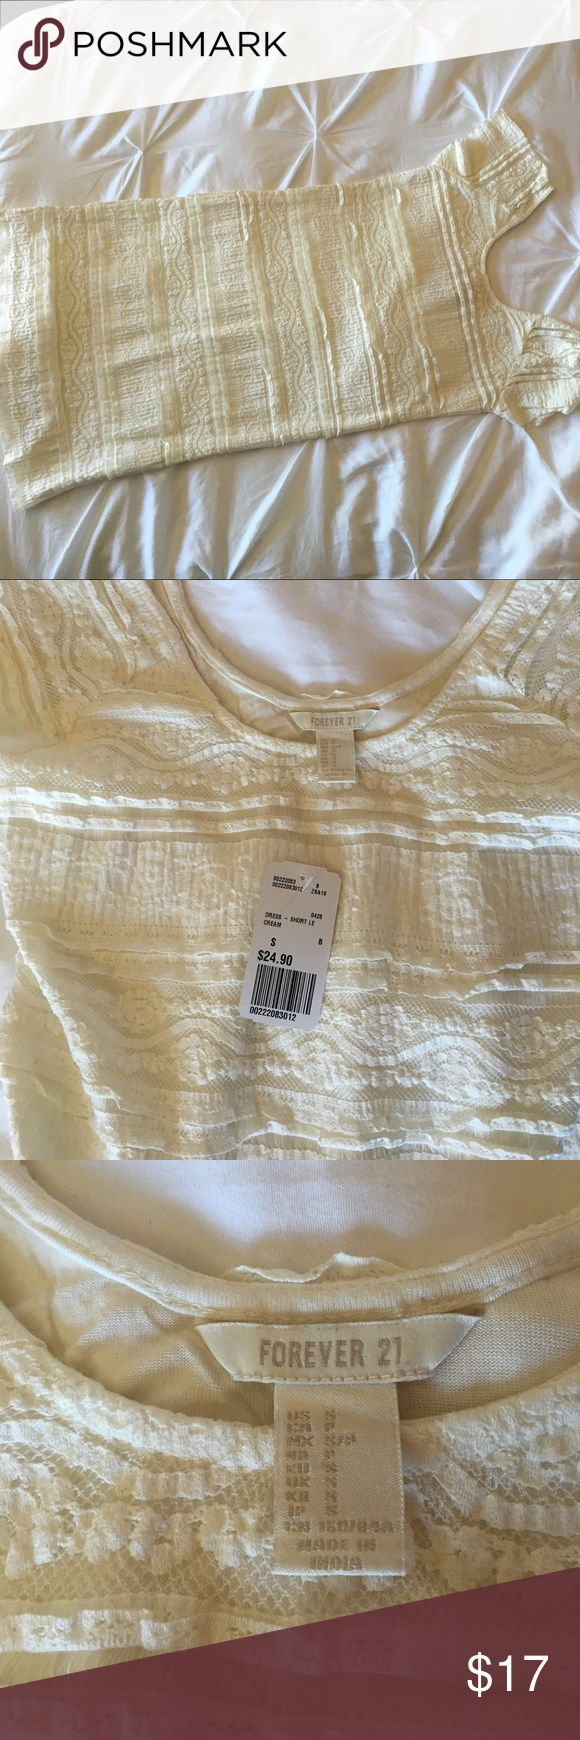 "NWT. Size small Forever 21 cream color dress. NWT. Adorable size small cream color dress! Lace overlay, fully lined underneath.  14.5"" pit to pit. Length from collar is 26 1/4"" Forever 21 Dresses"